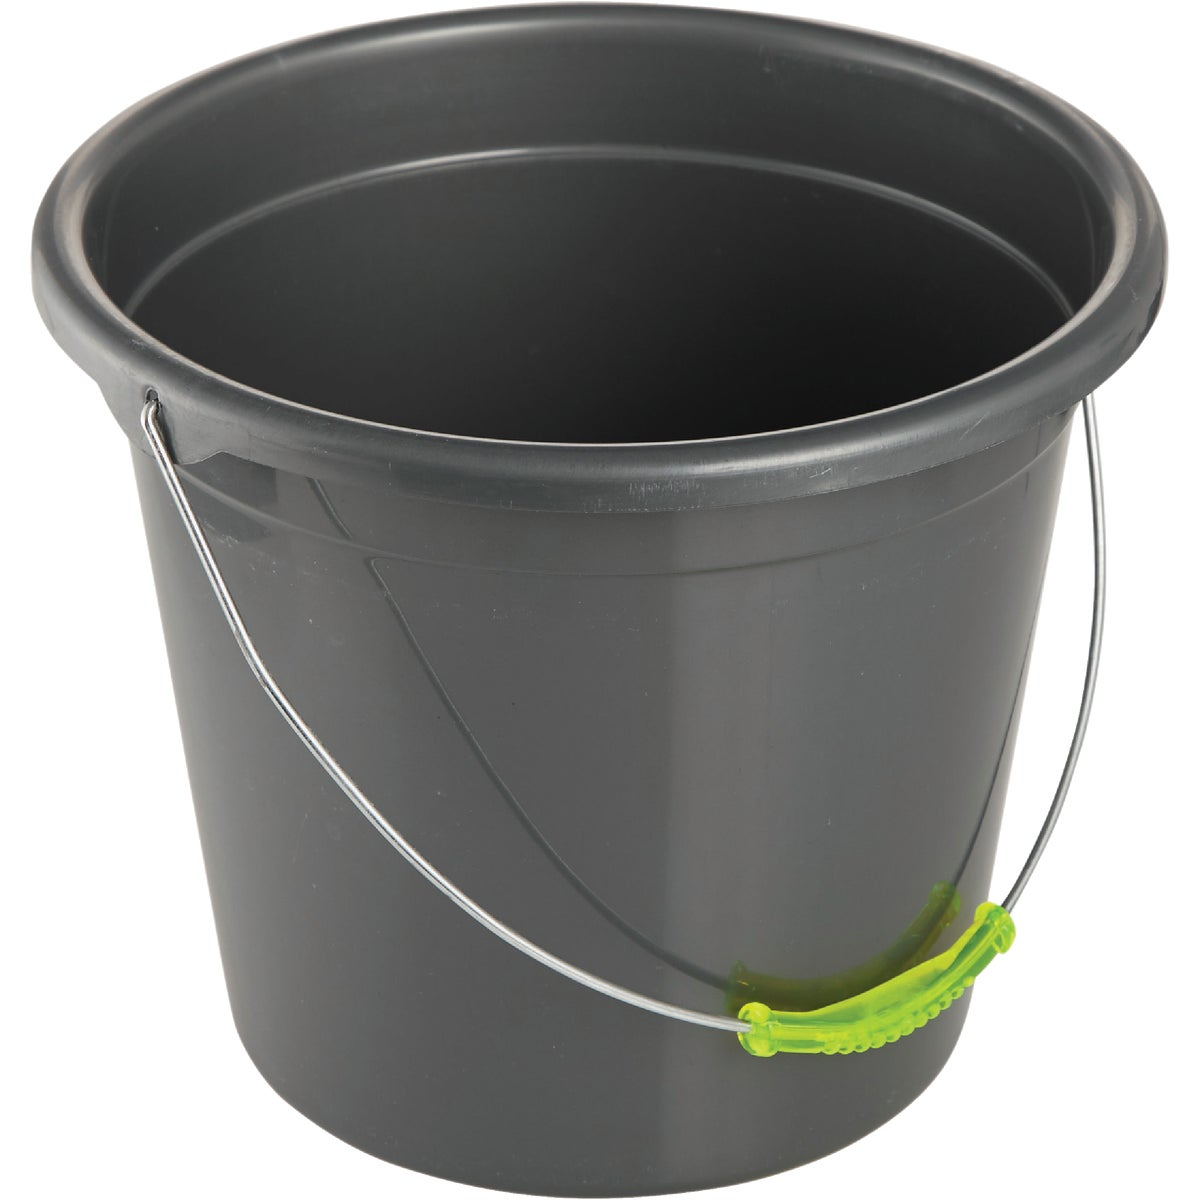 10QT POLY BUCKET - HW130 by Do it Best